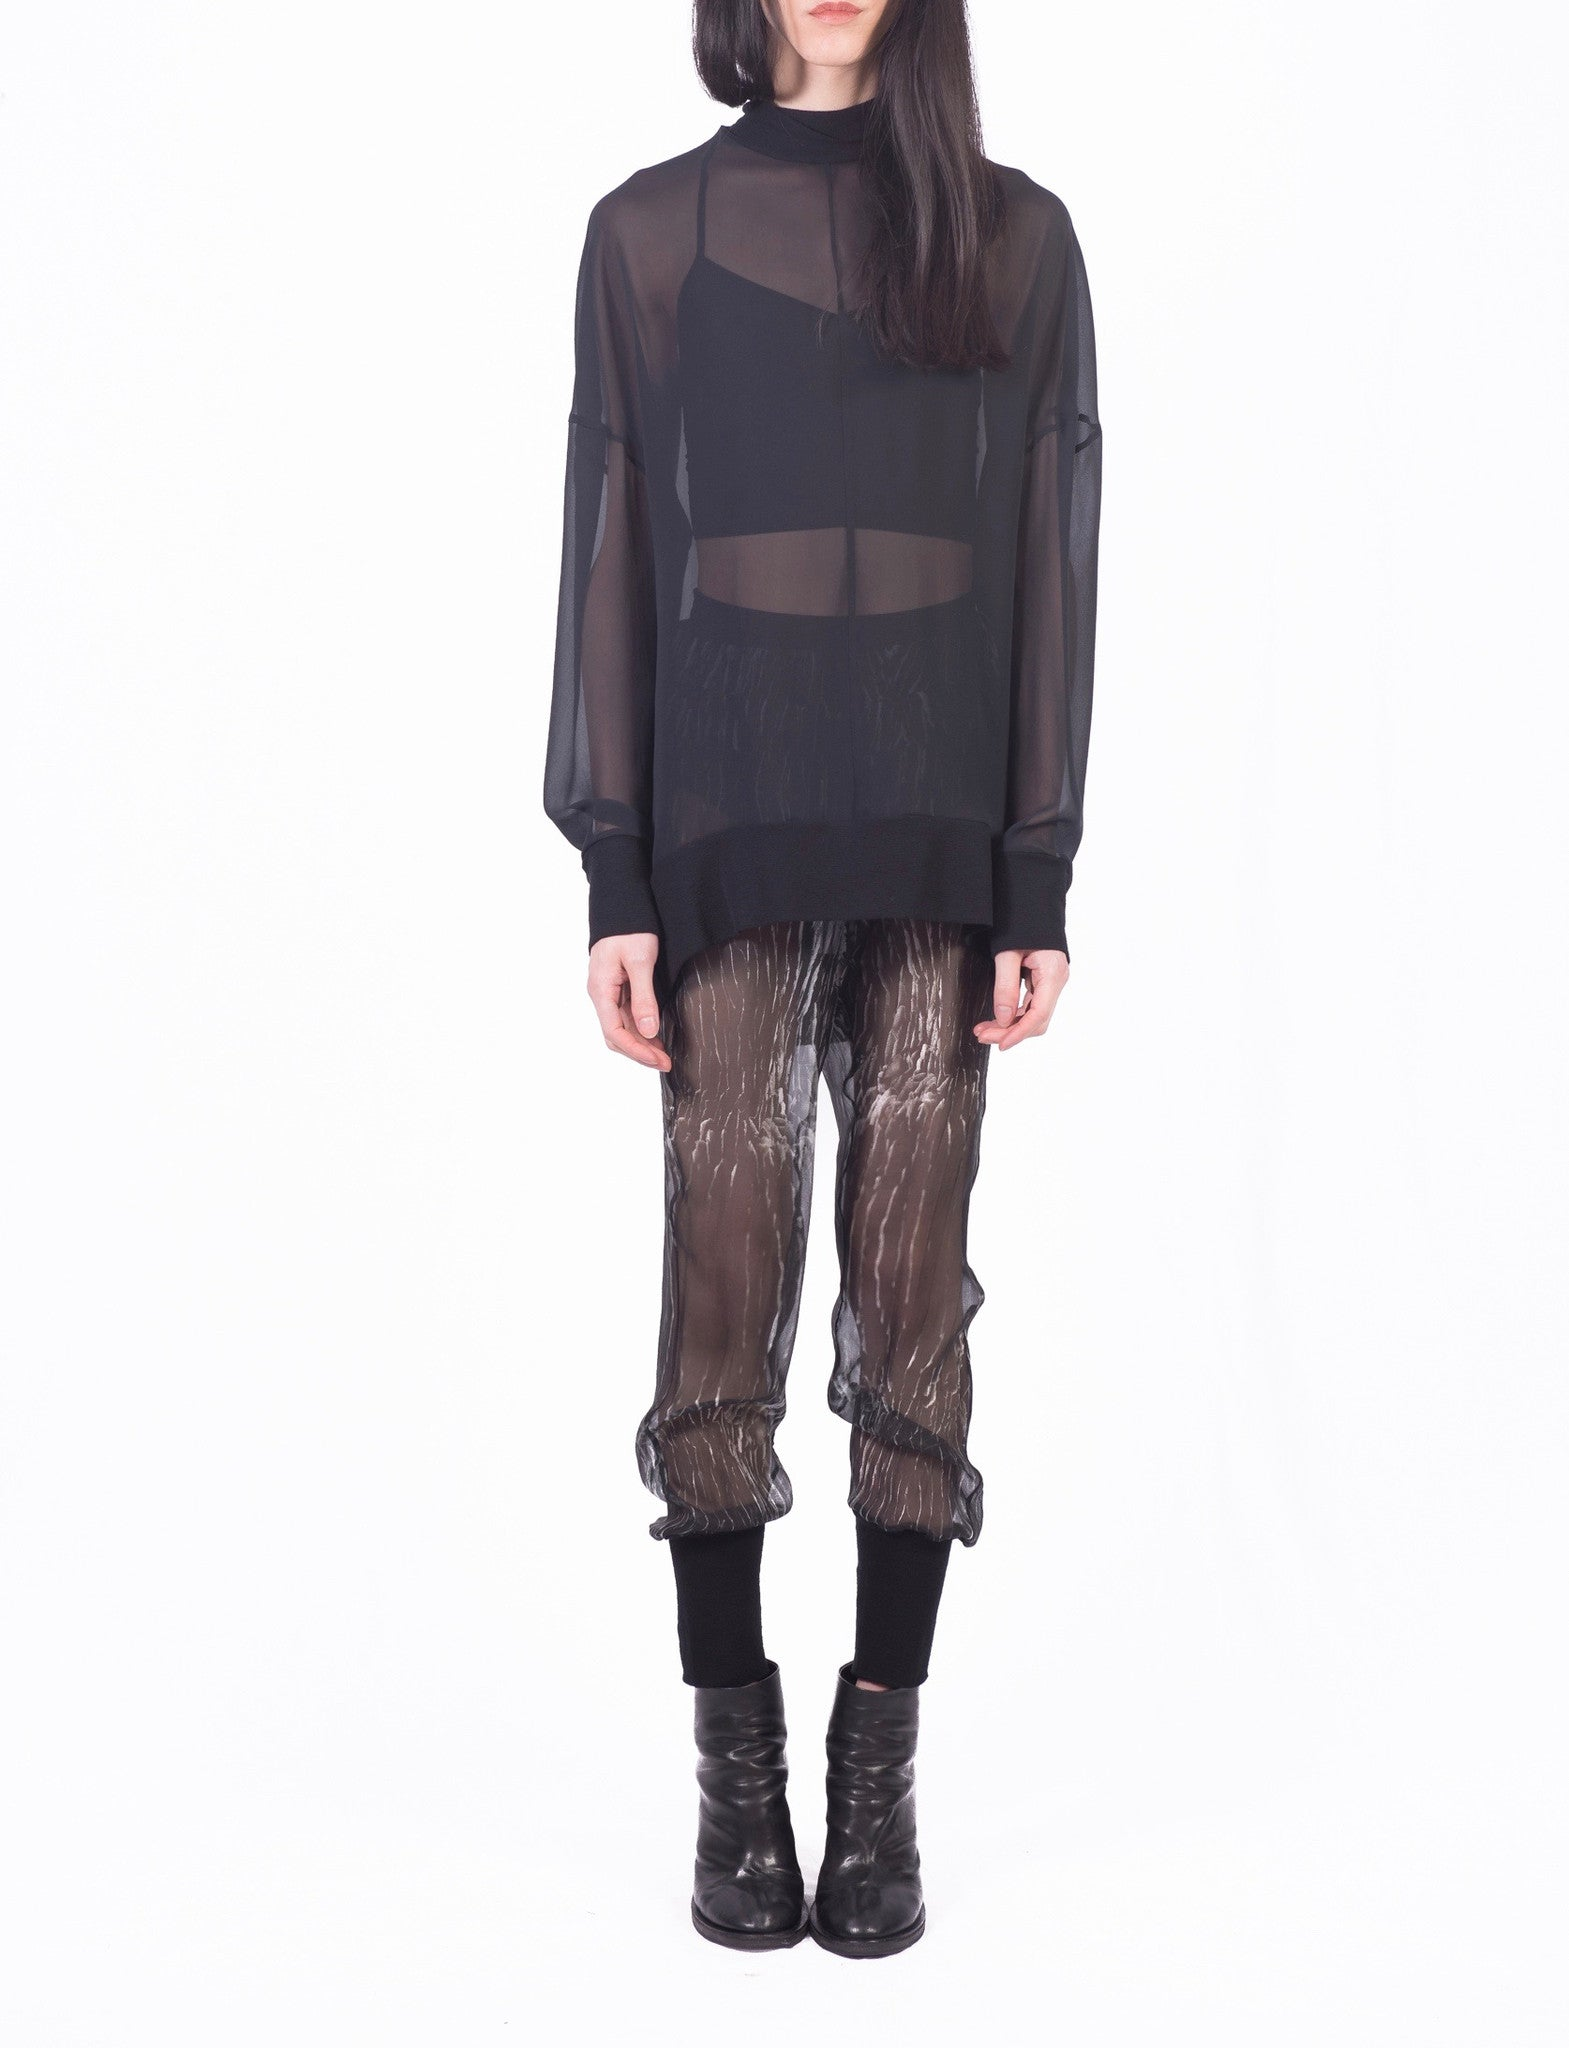 127 Brick Lane ANN DEMEULEMEESTER Black White 100% Silk sheer trousers